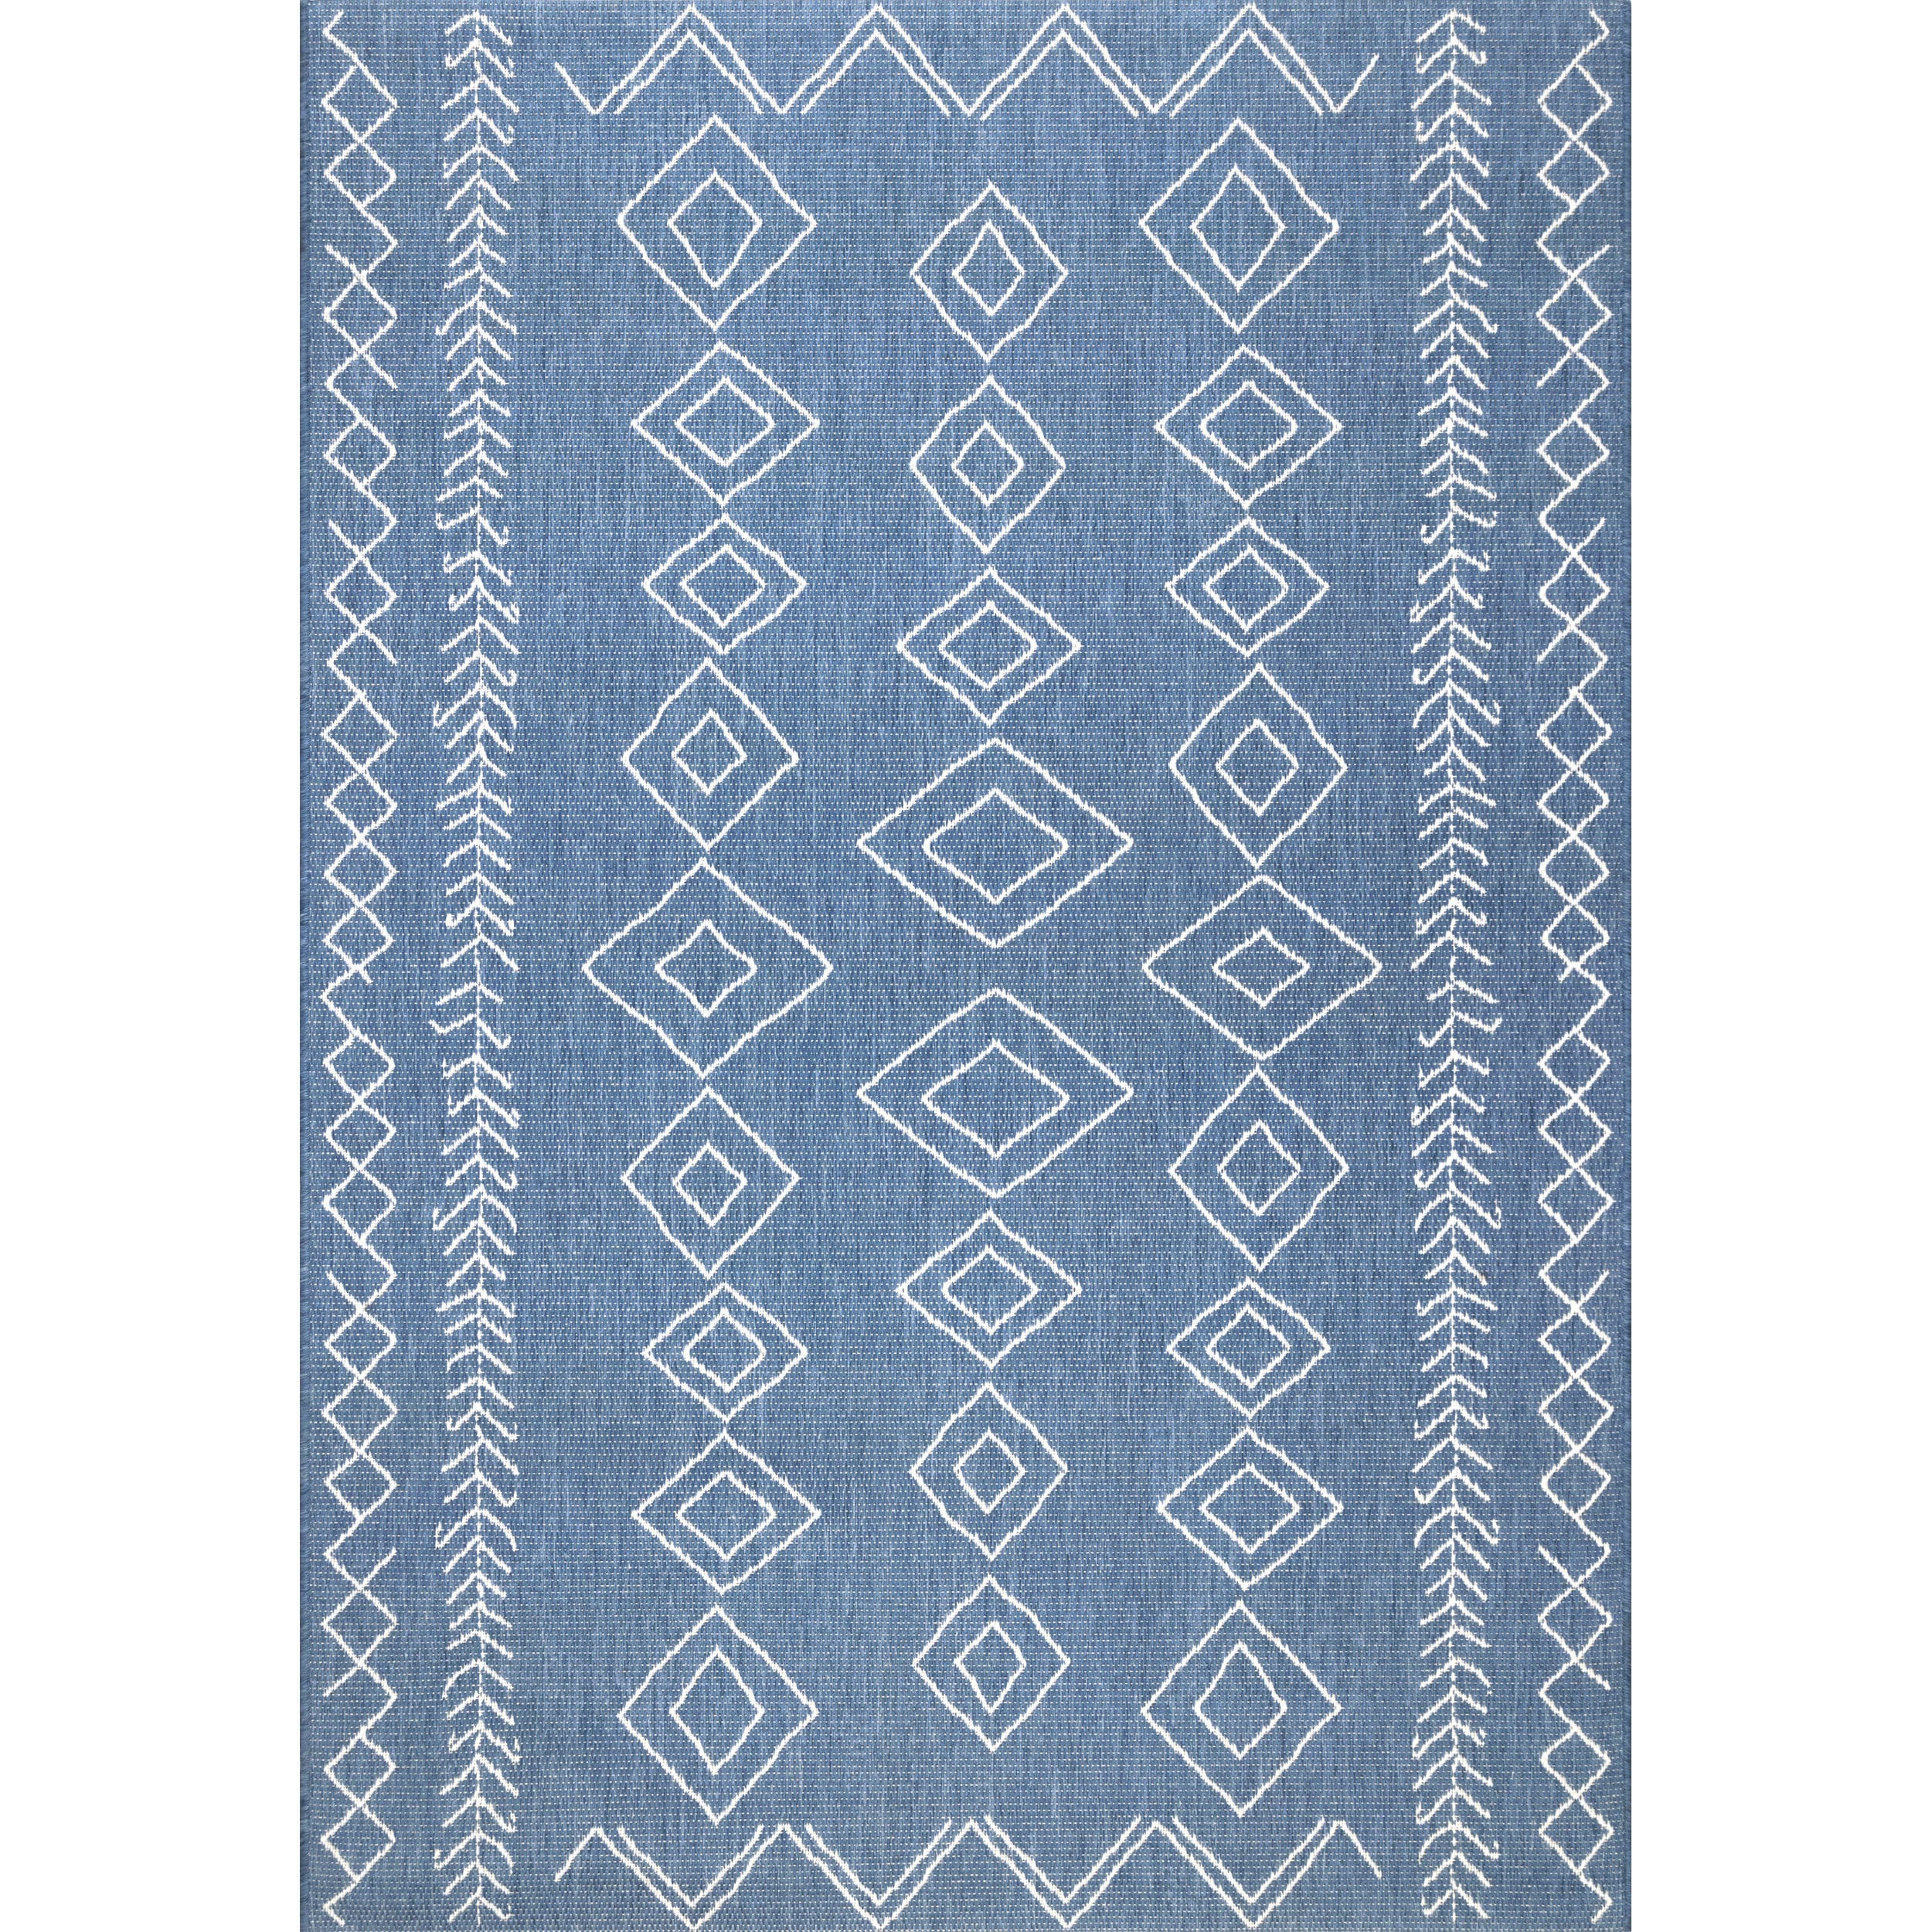 nuLOOM Indoor Outdoor Moroccan Inspired Diamonds Blue Rug 6 3 x 9